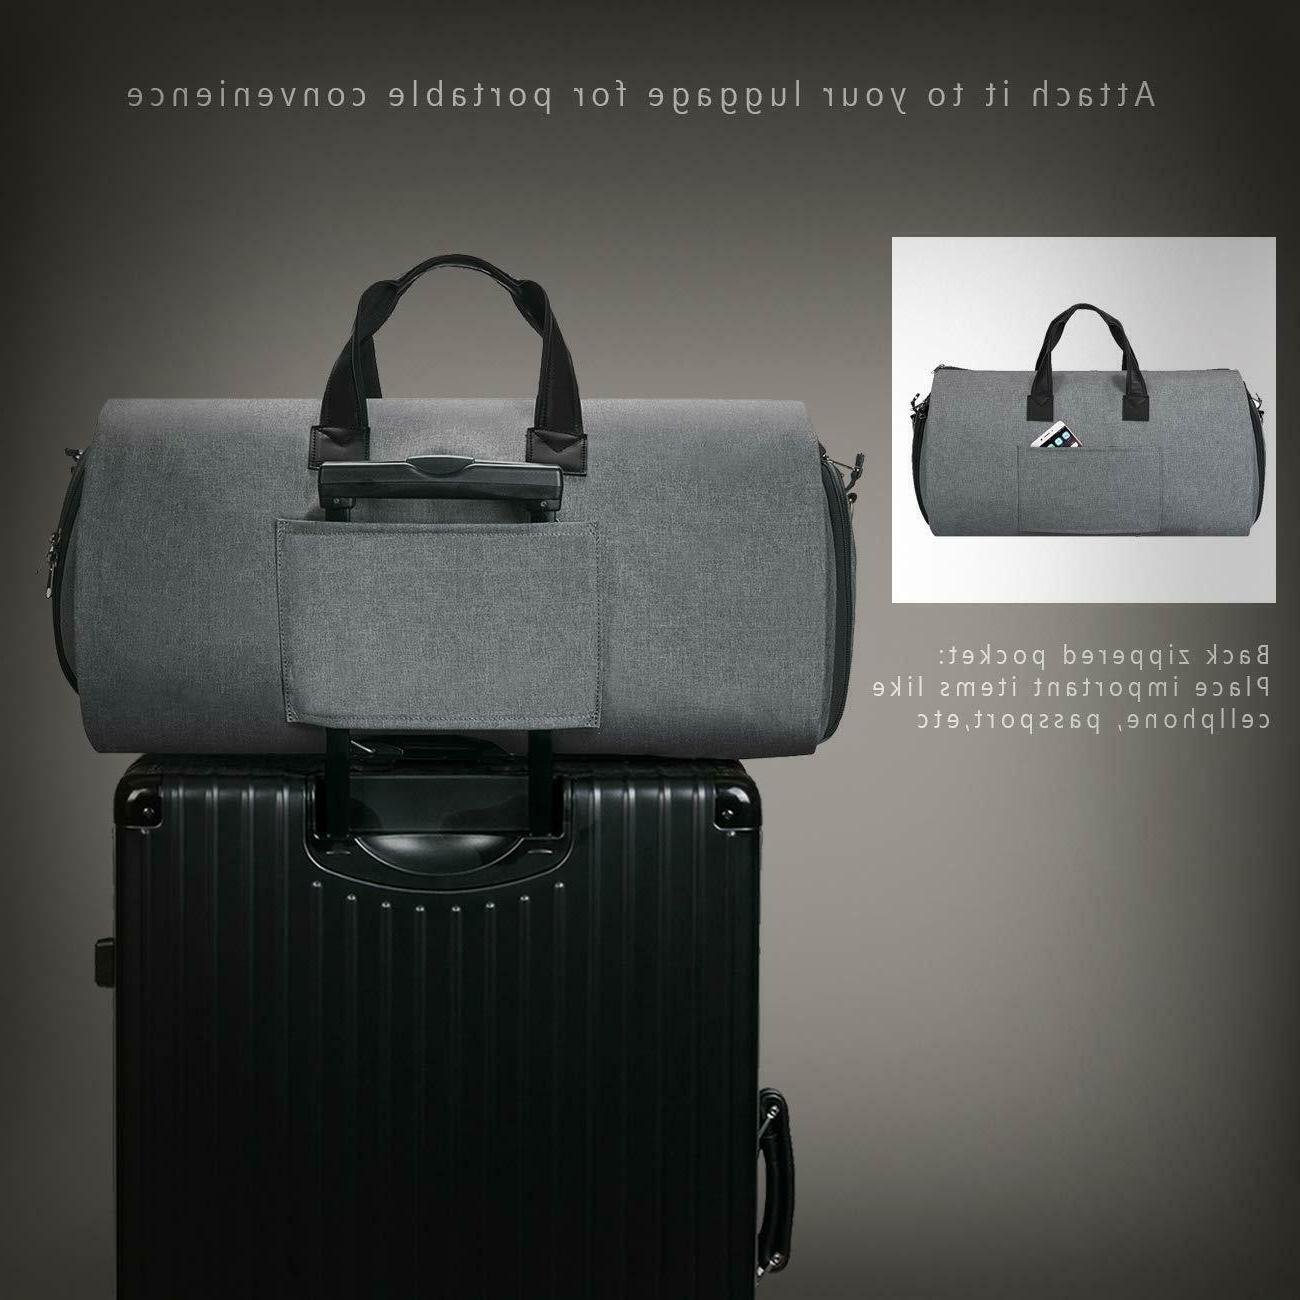 BUG Garment and Garment Bag - in 1